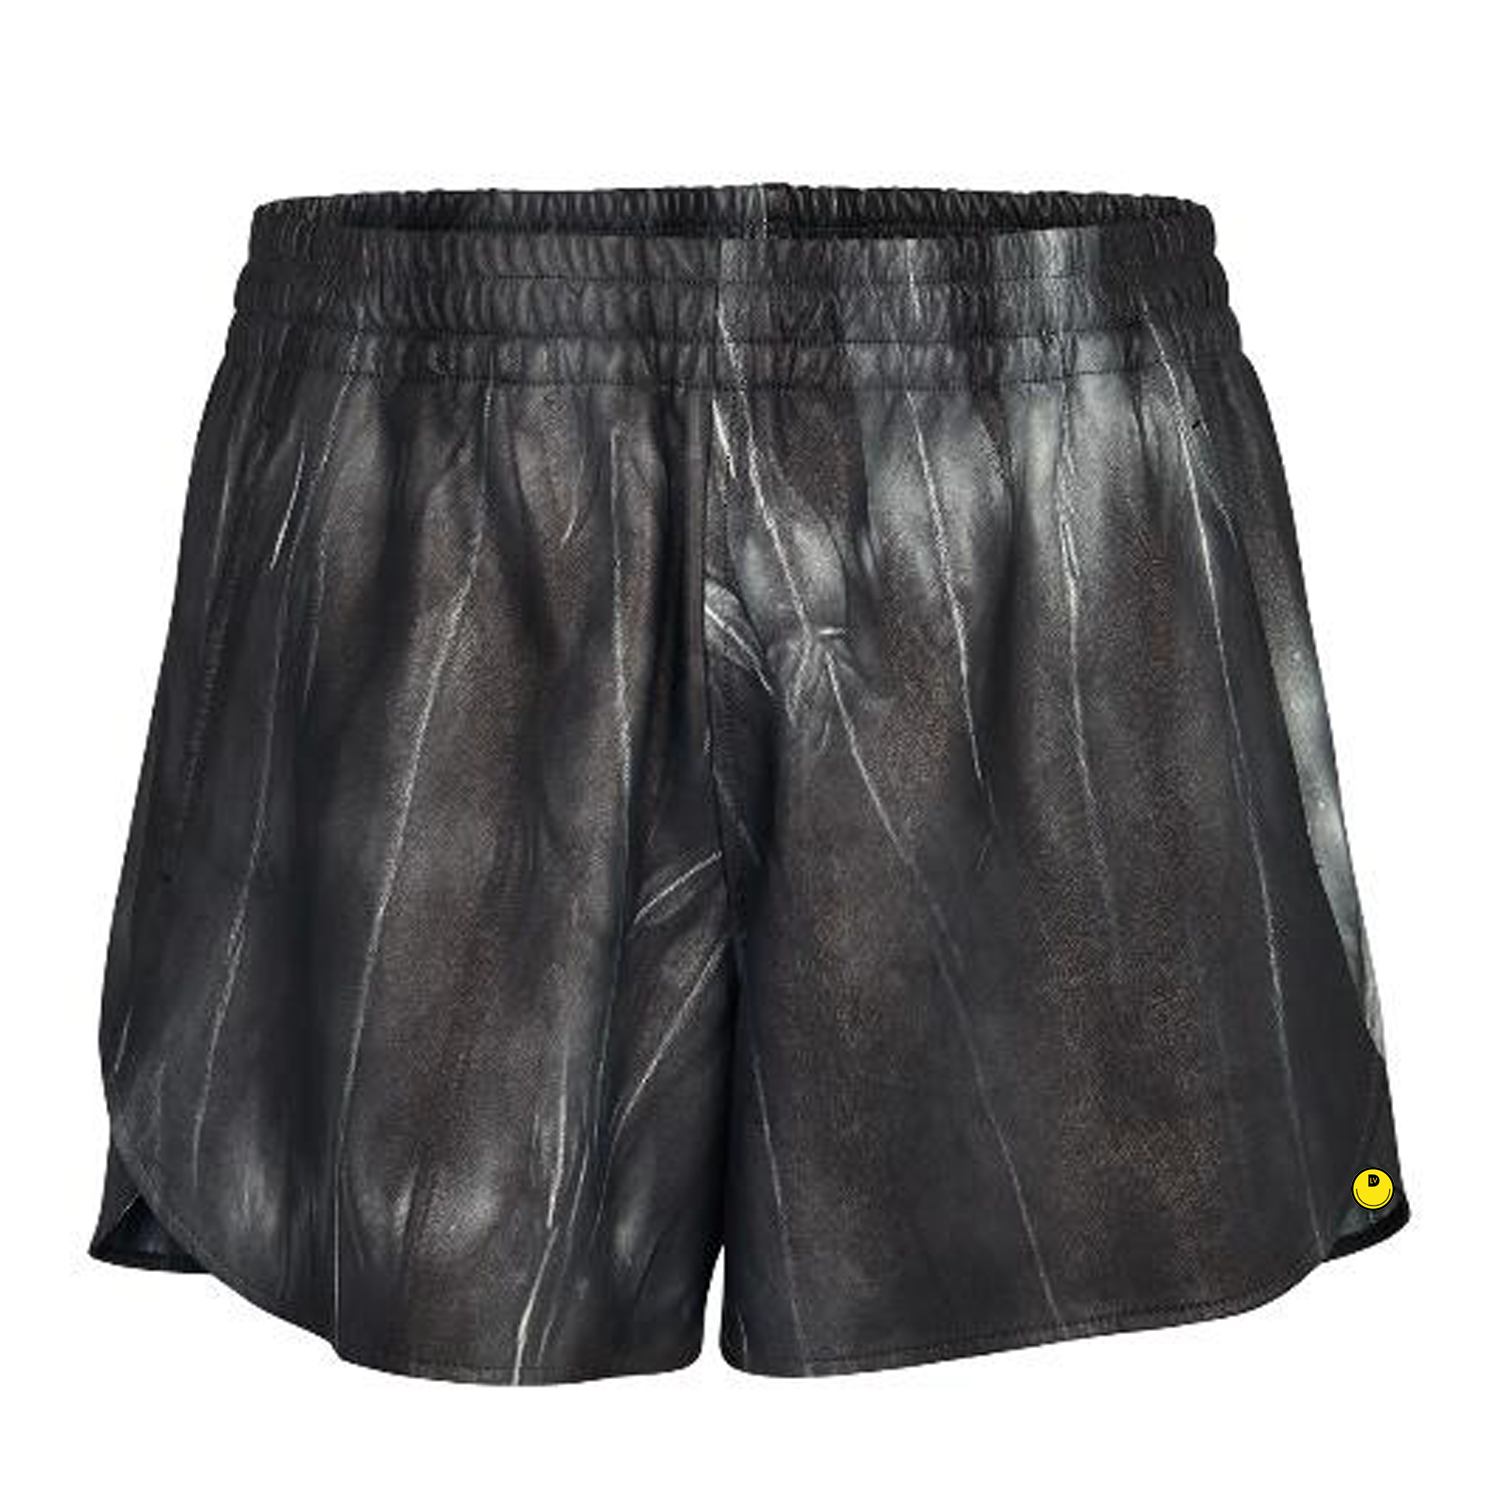 TIE AND DYE LEATHER SHORTS - €3100 $-NOIR